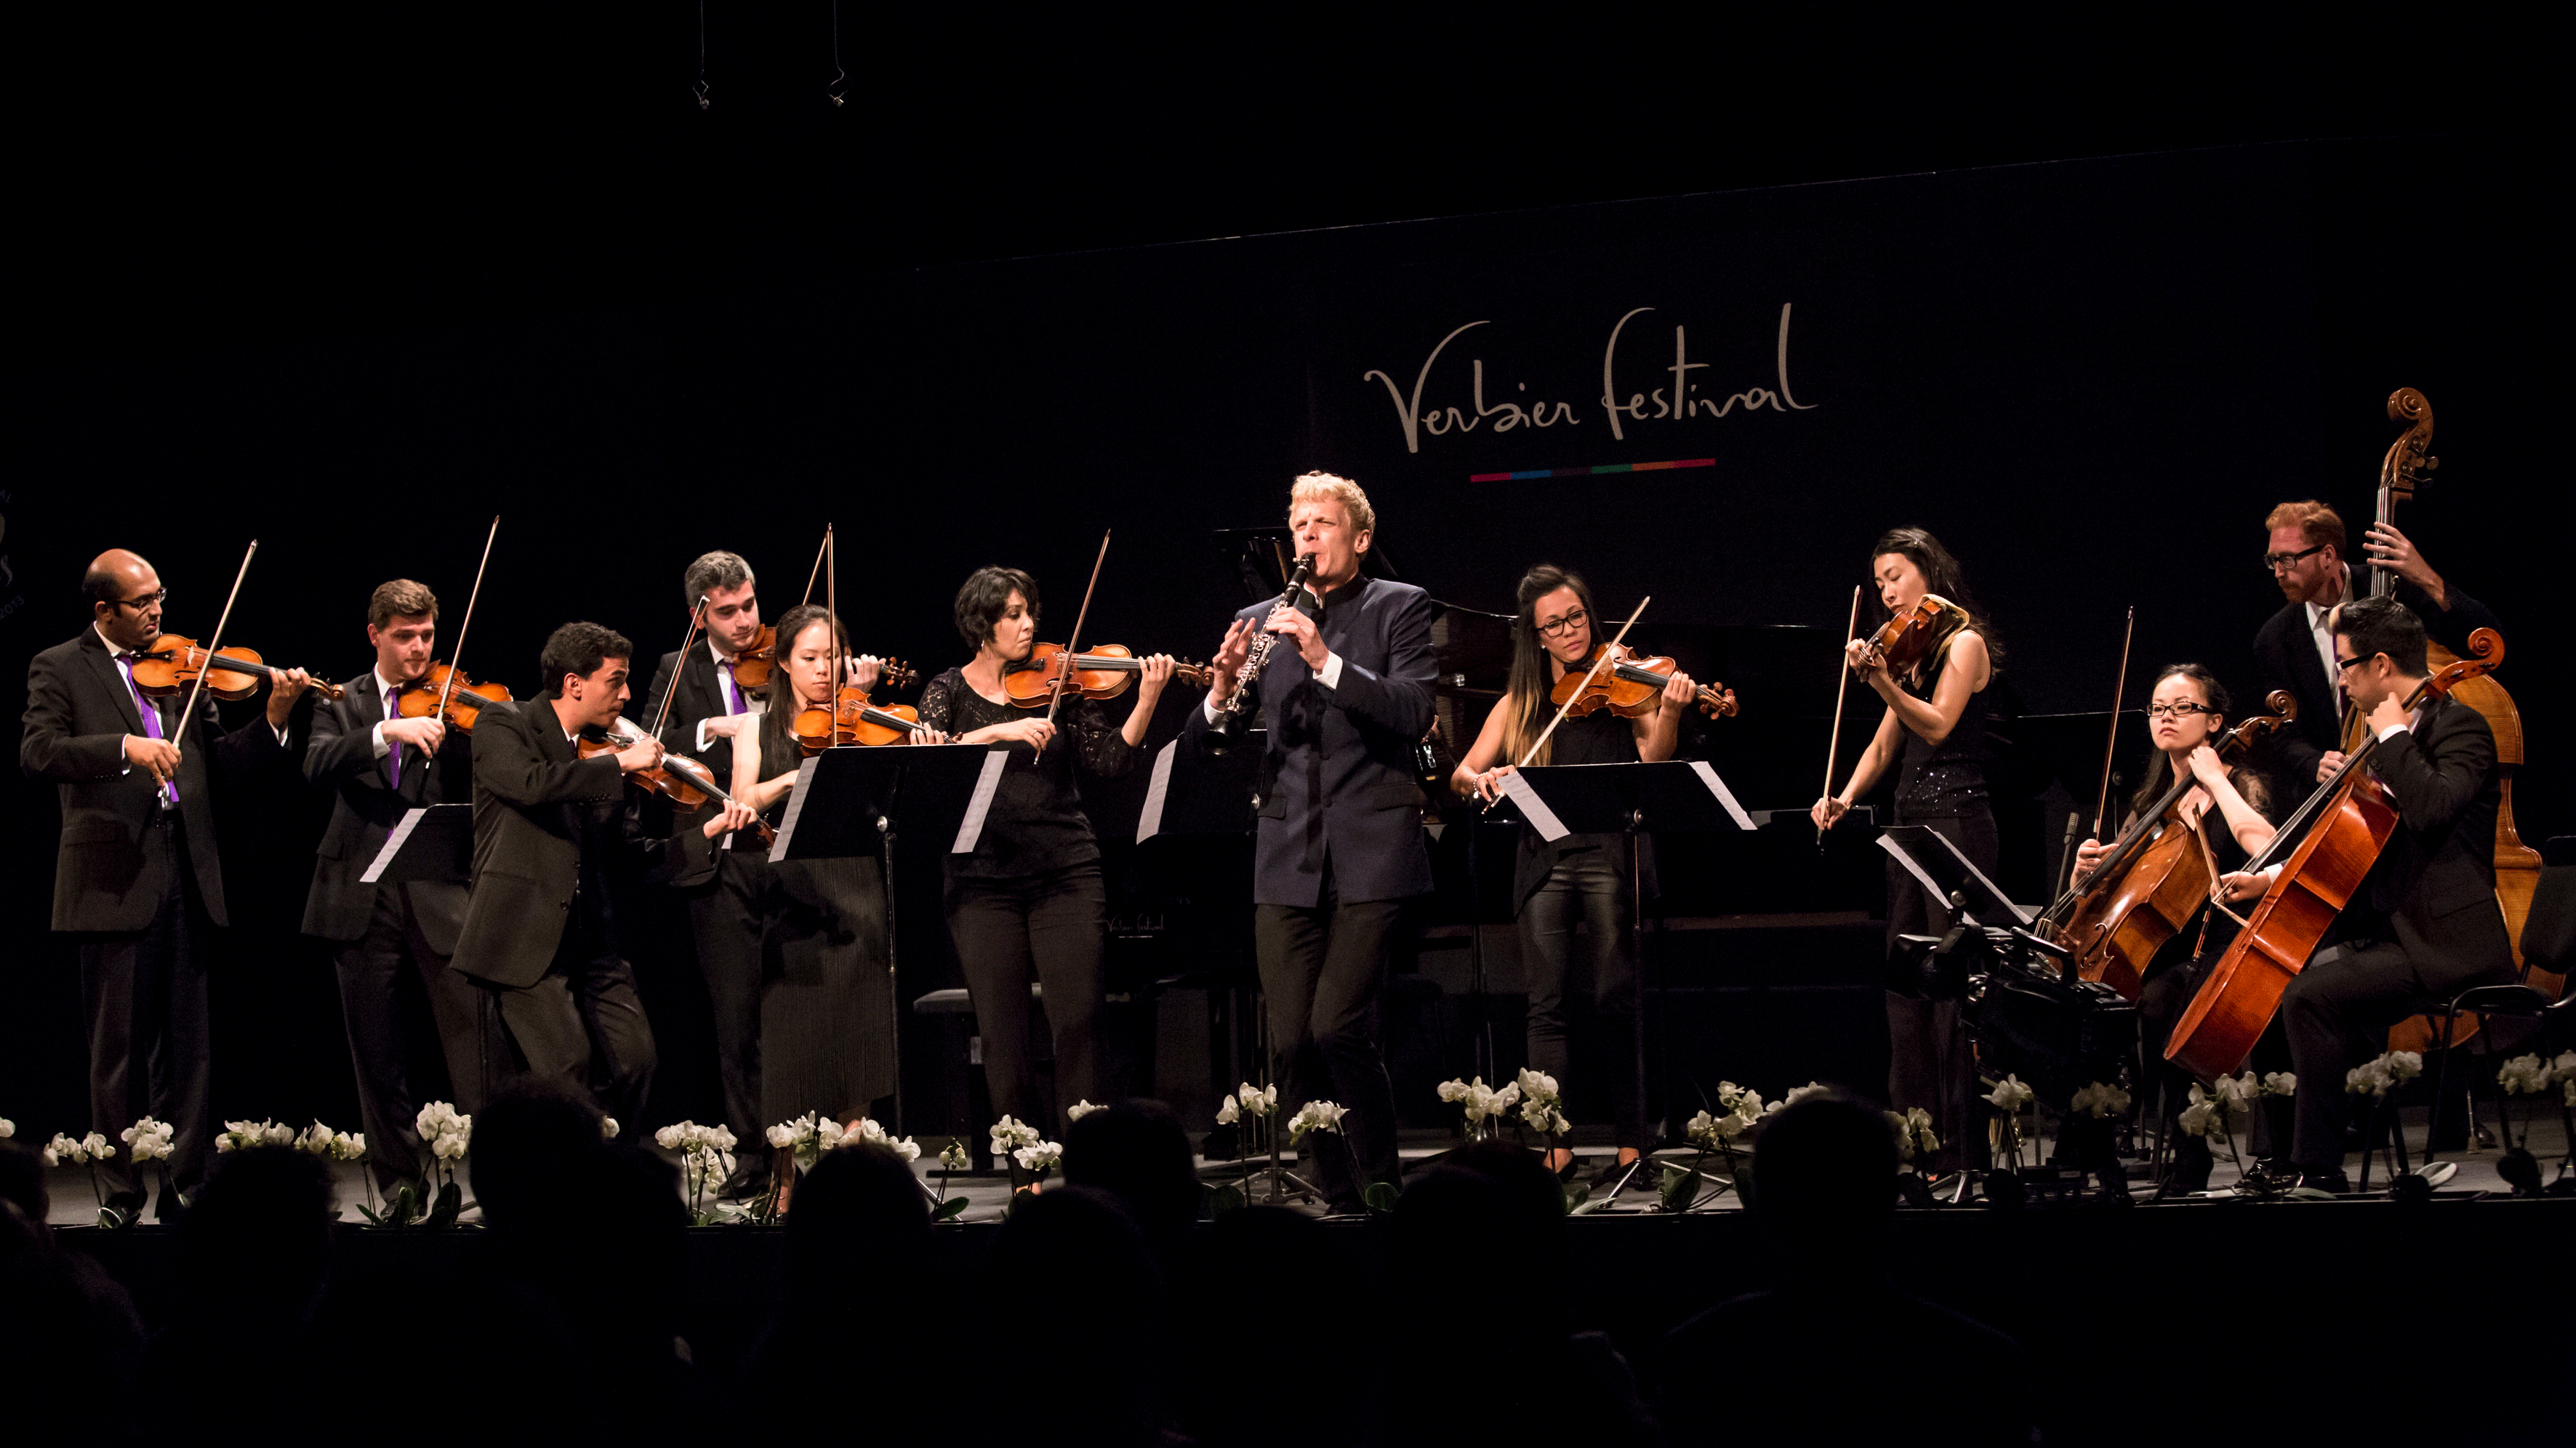 The Verbier Festival celebrates its 20th anniversary!